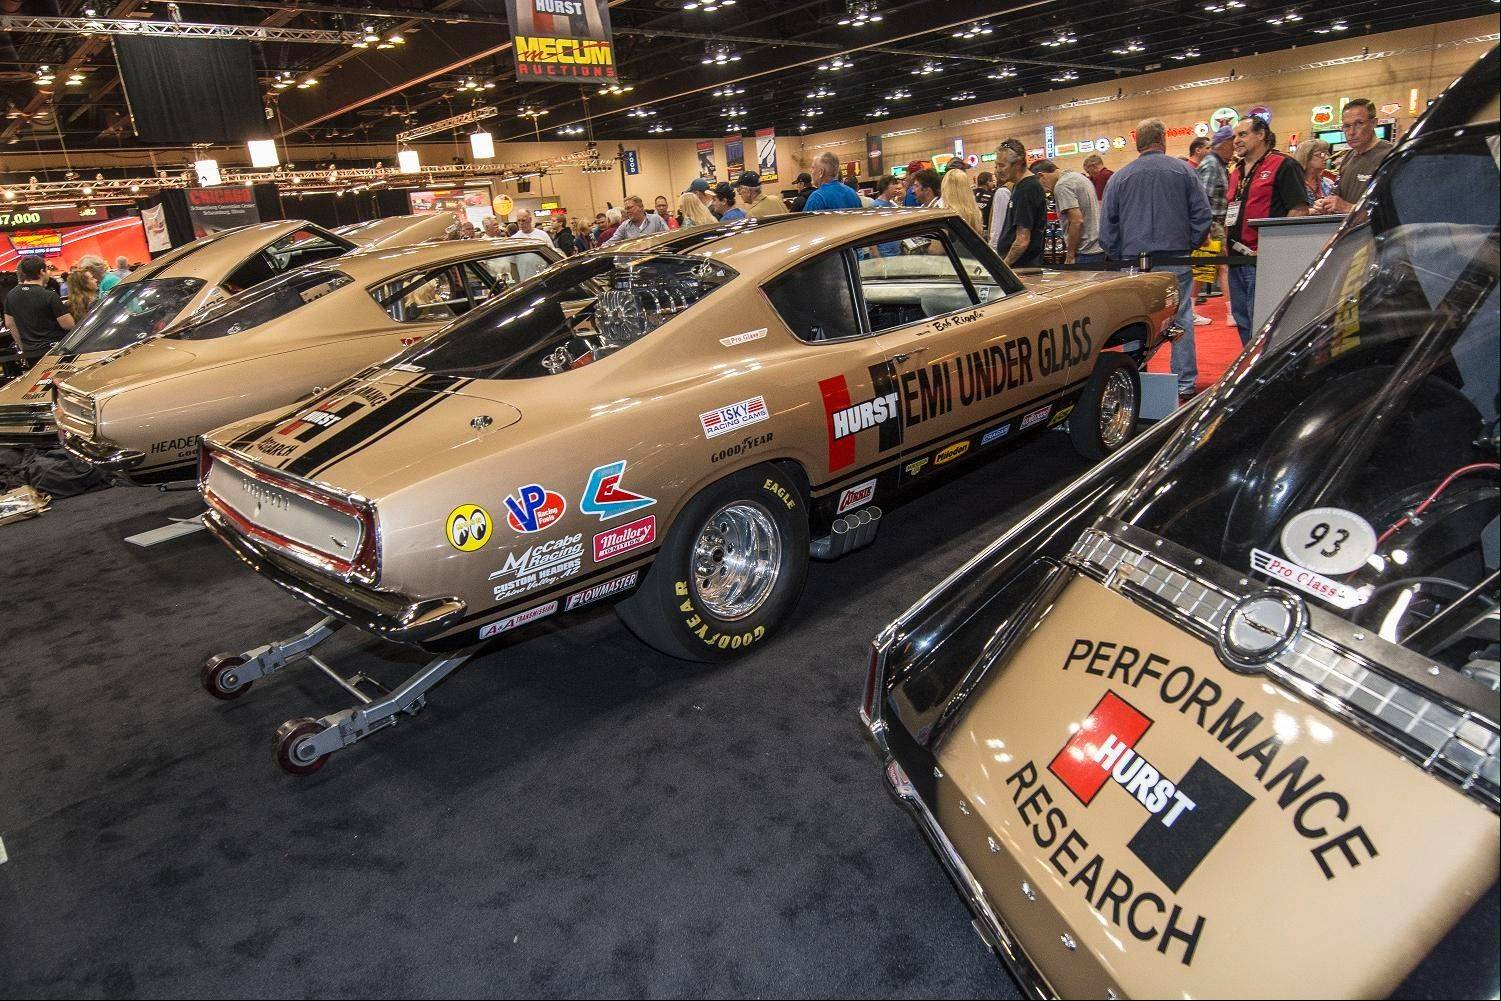 The auction featured four 1960s Plymouth Barracudas customized by the Hurst company.